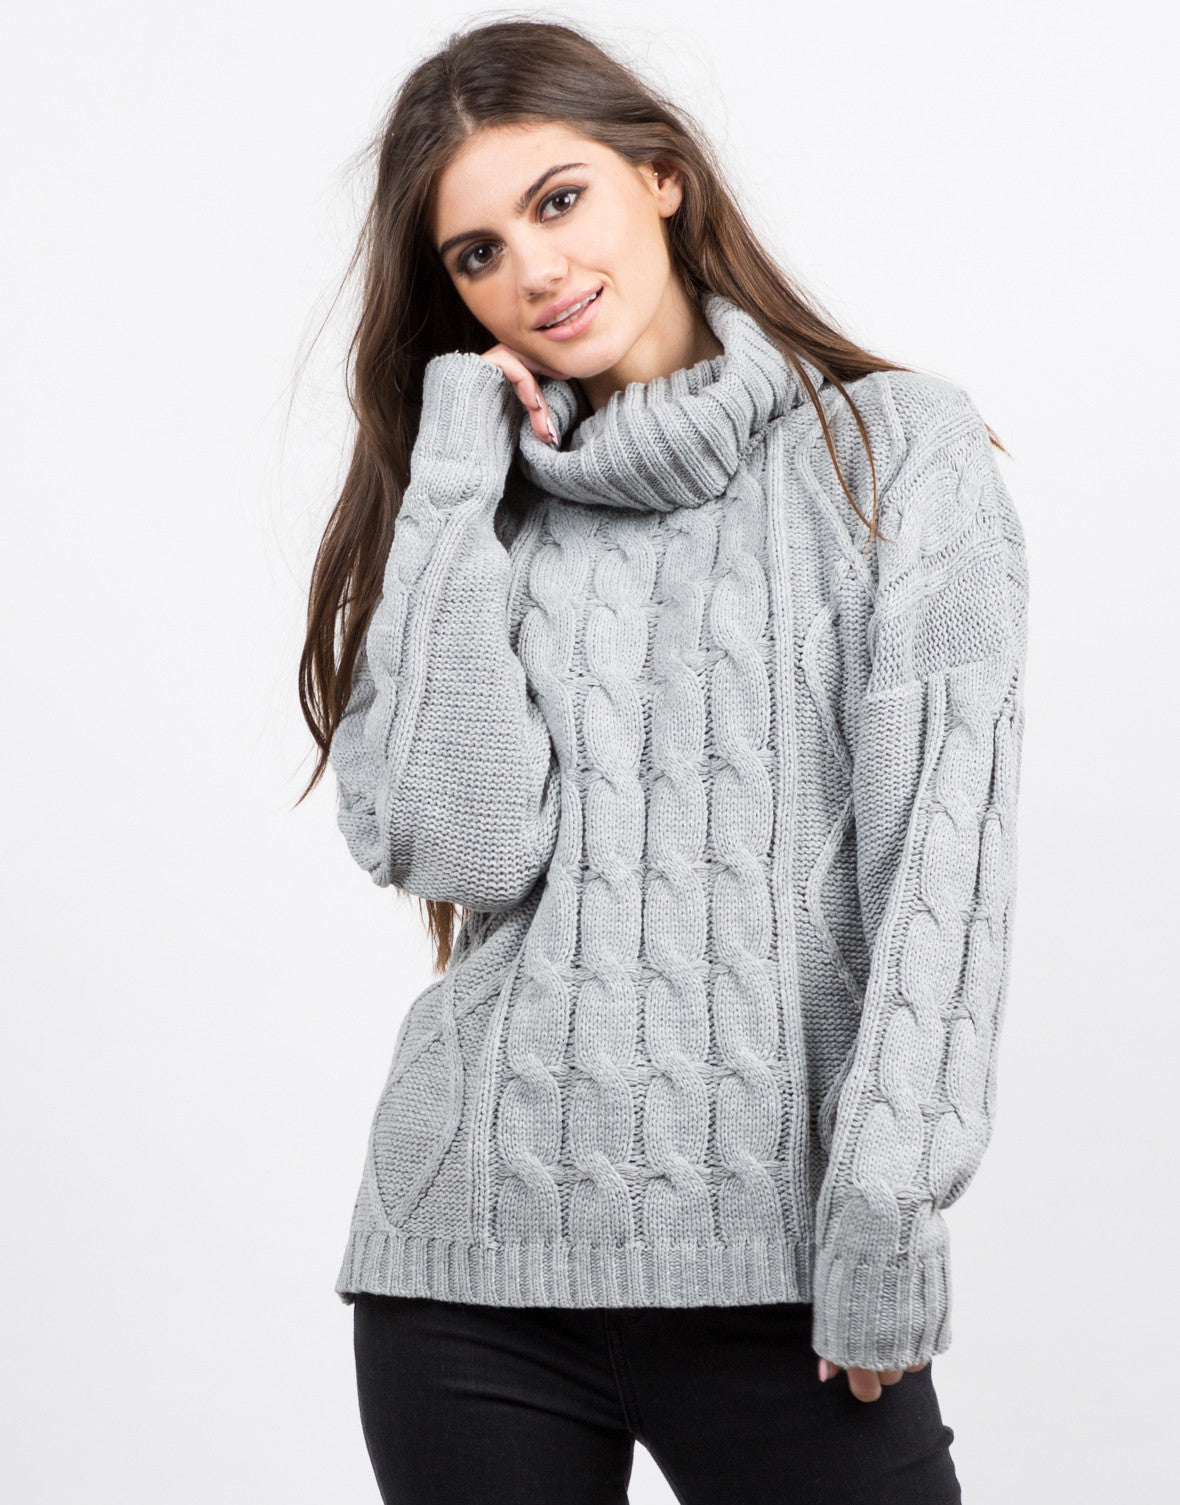 Sweater Knit : Turtleneck chunky knit sweater cowl neck thick